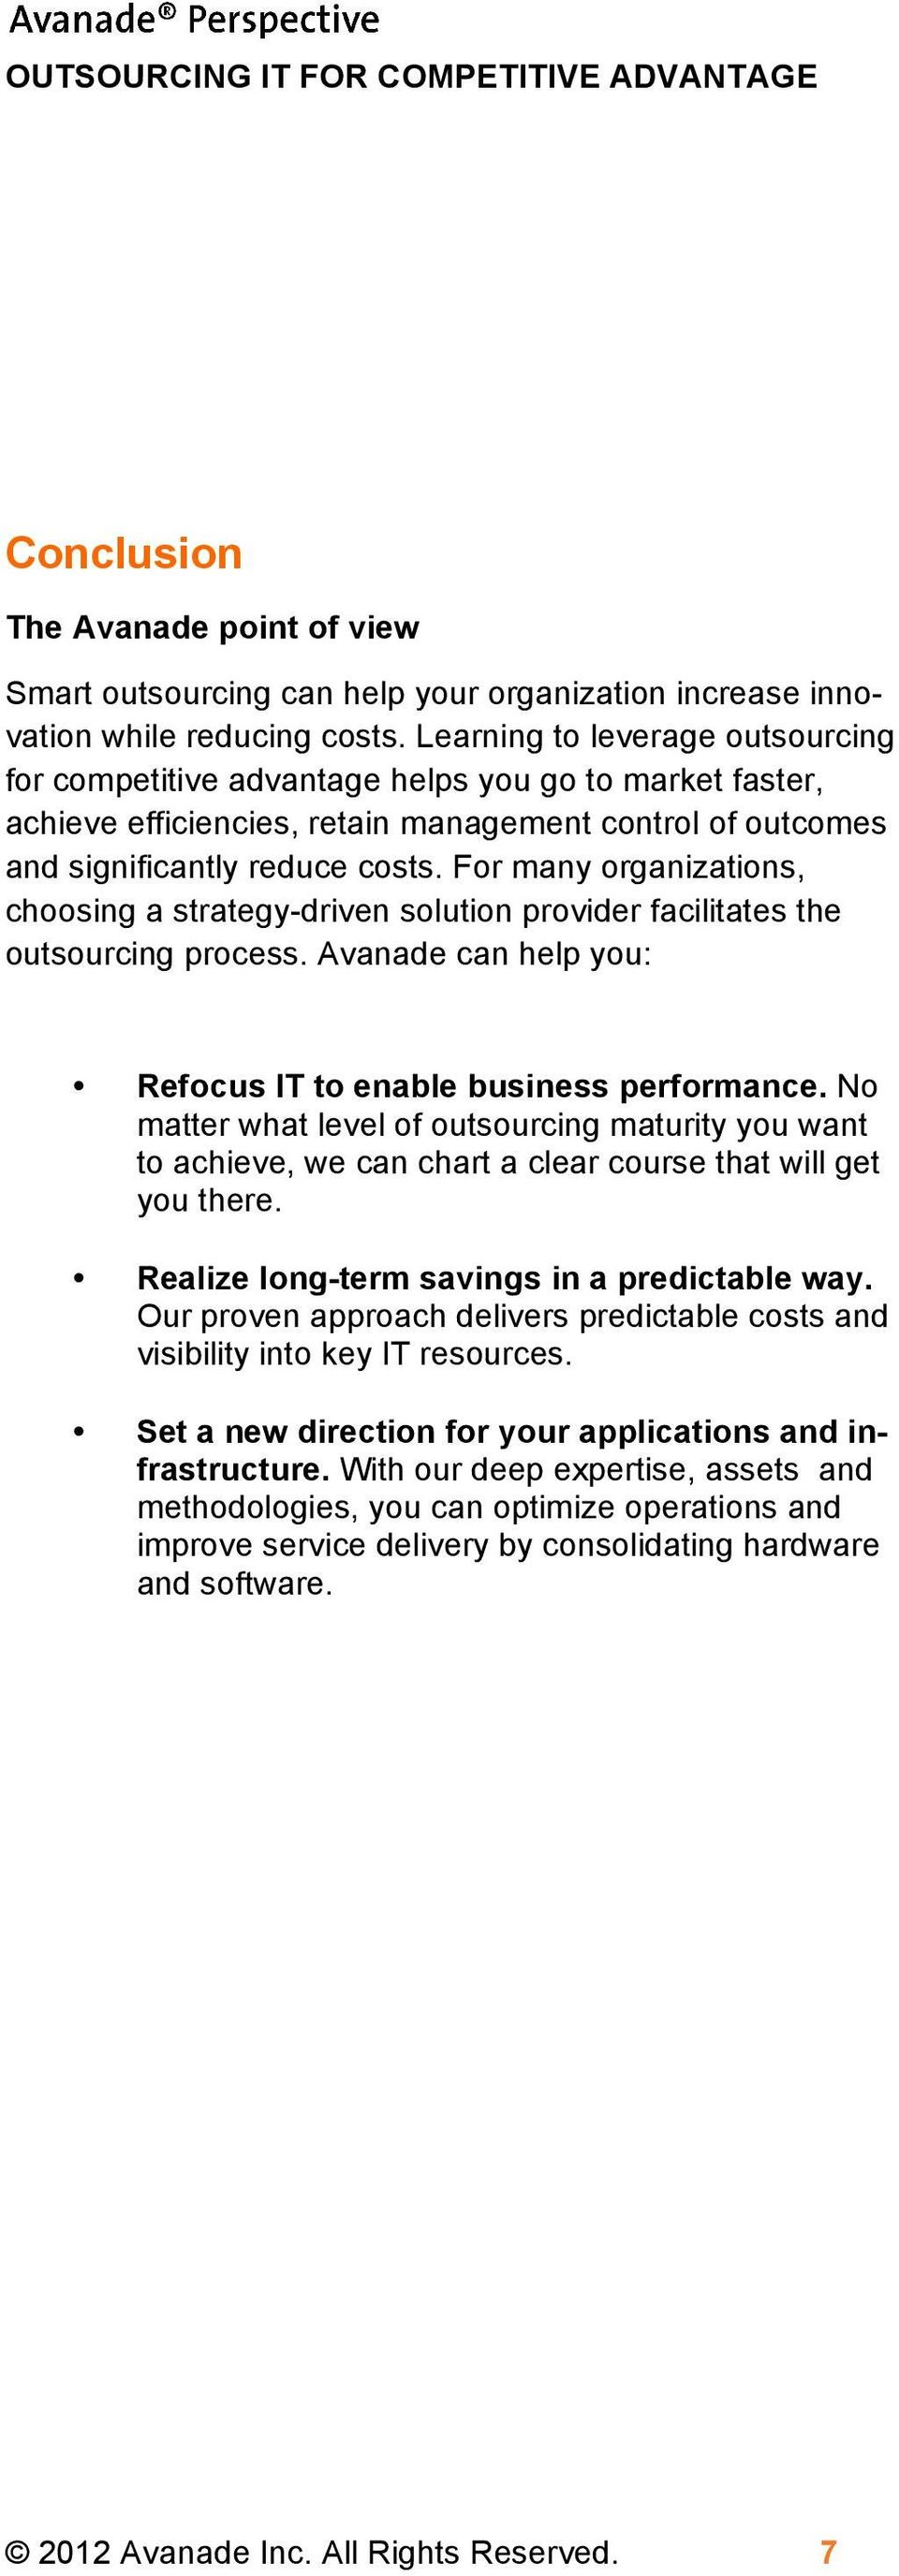 For many organizations, choosing a strategy-driven solution provider facilitates the outsourcing process. Avanade can help you: Refocus IT to enable business performance.